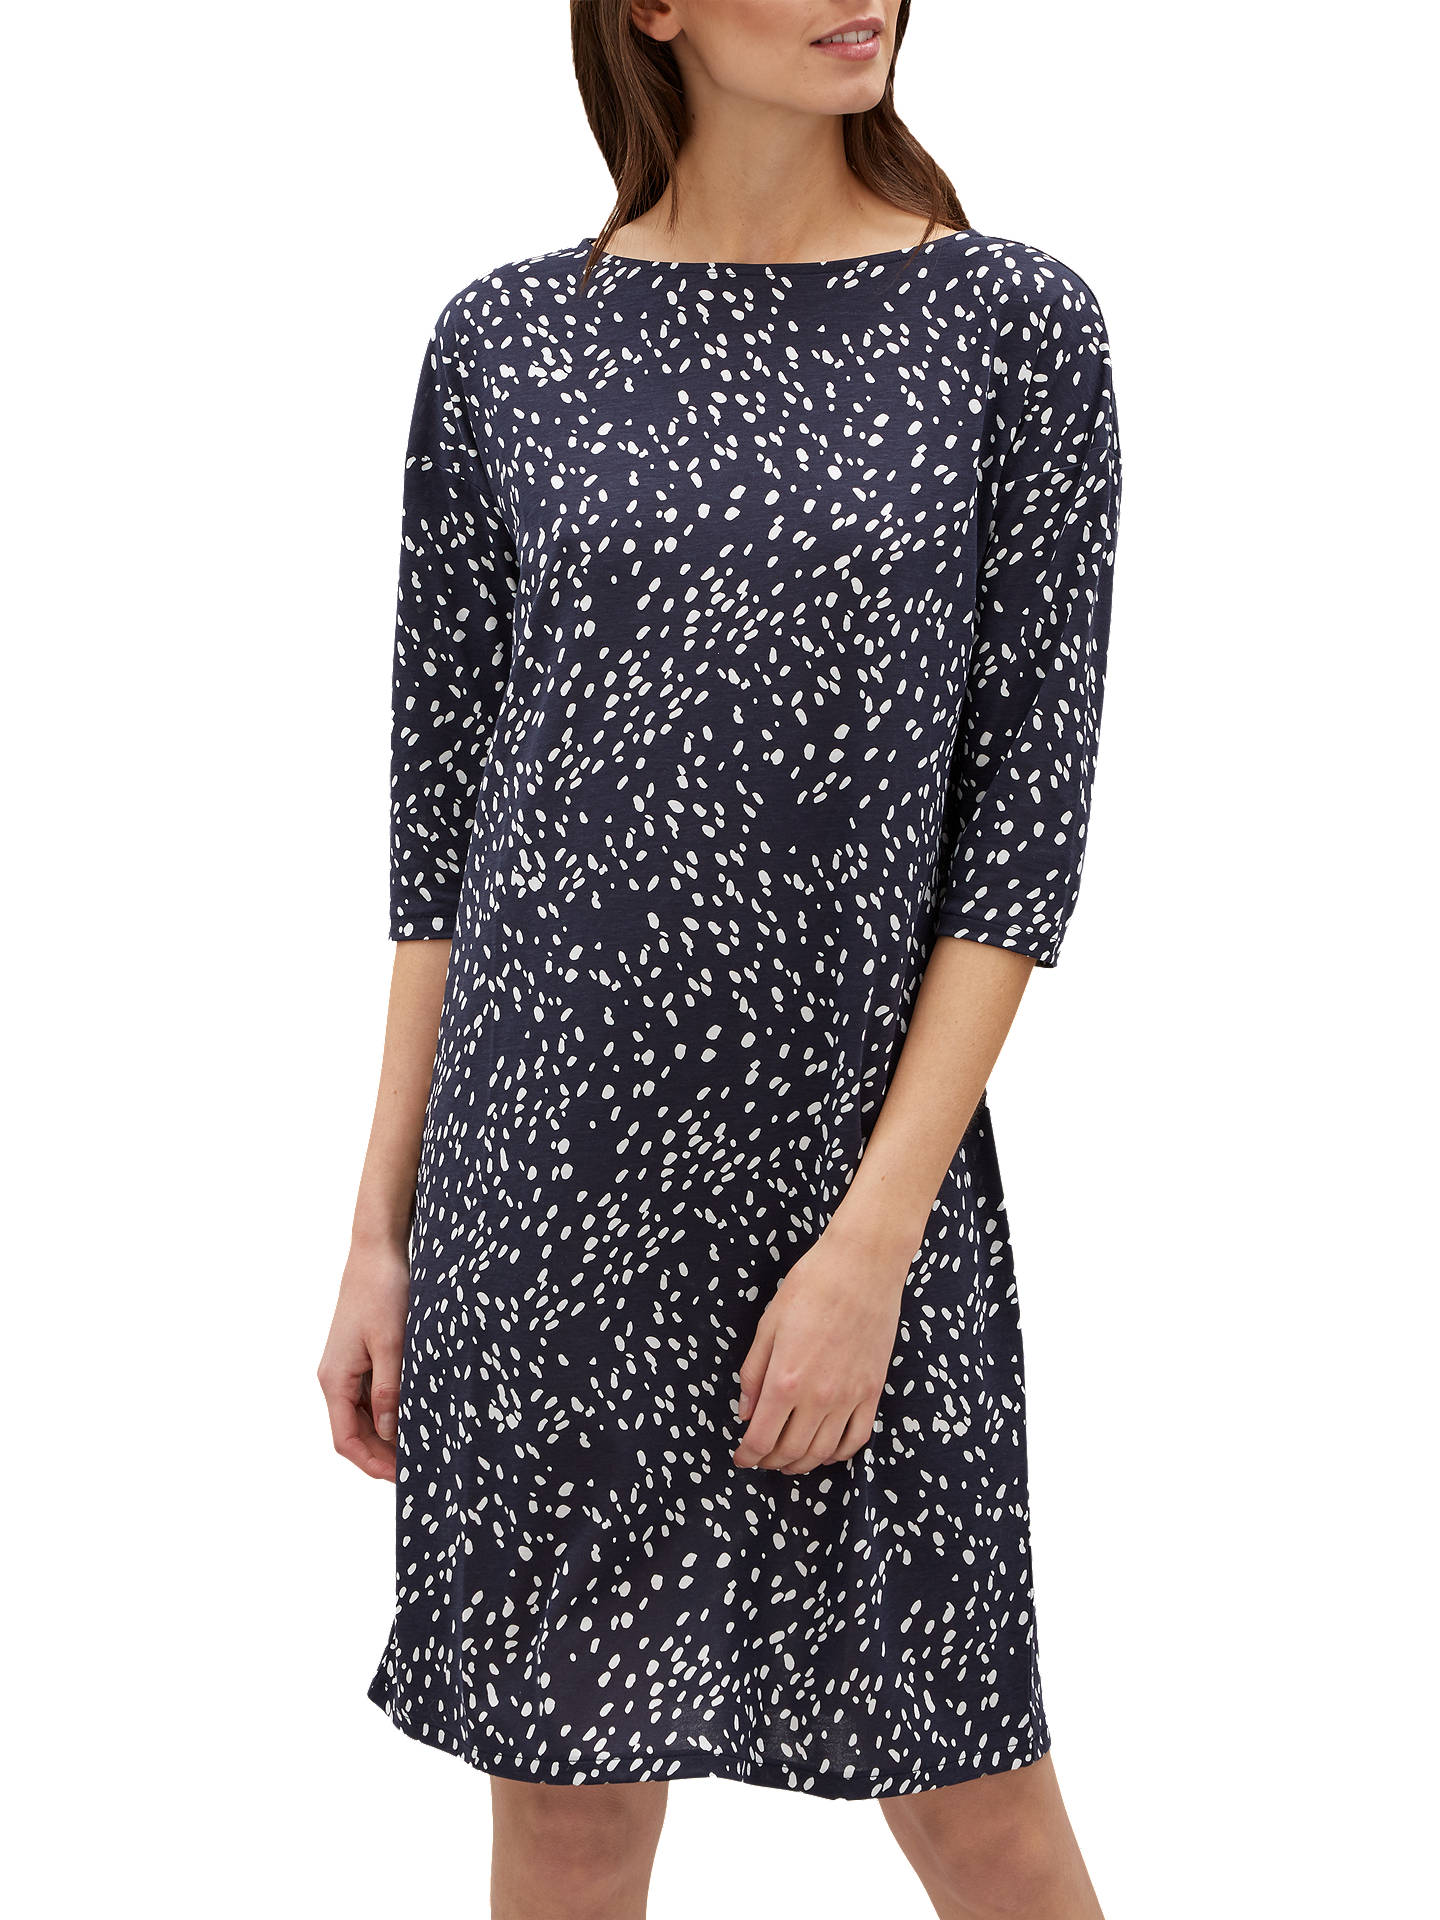 BuyJaeger Ditsy Print Jersey Dress, Navy/White, XS Online at johnlewis.com